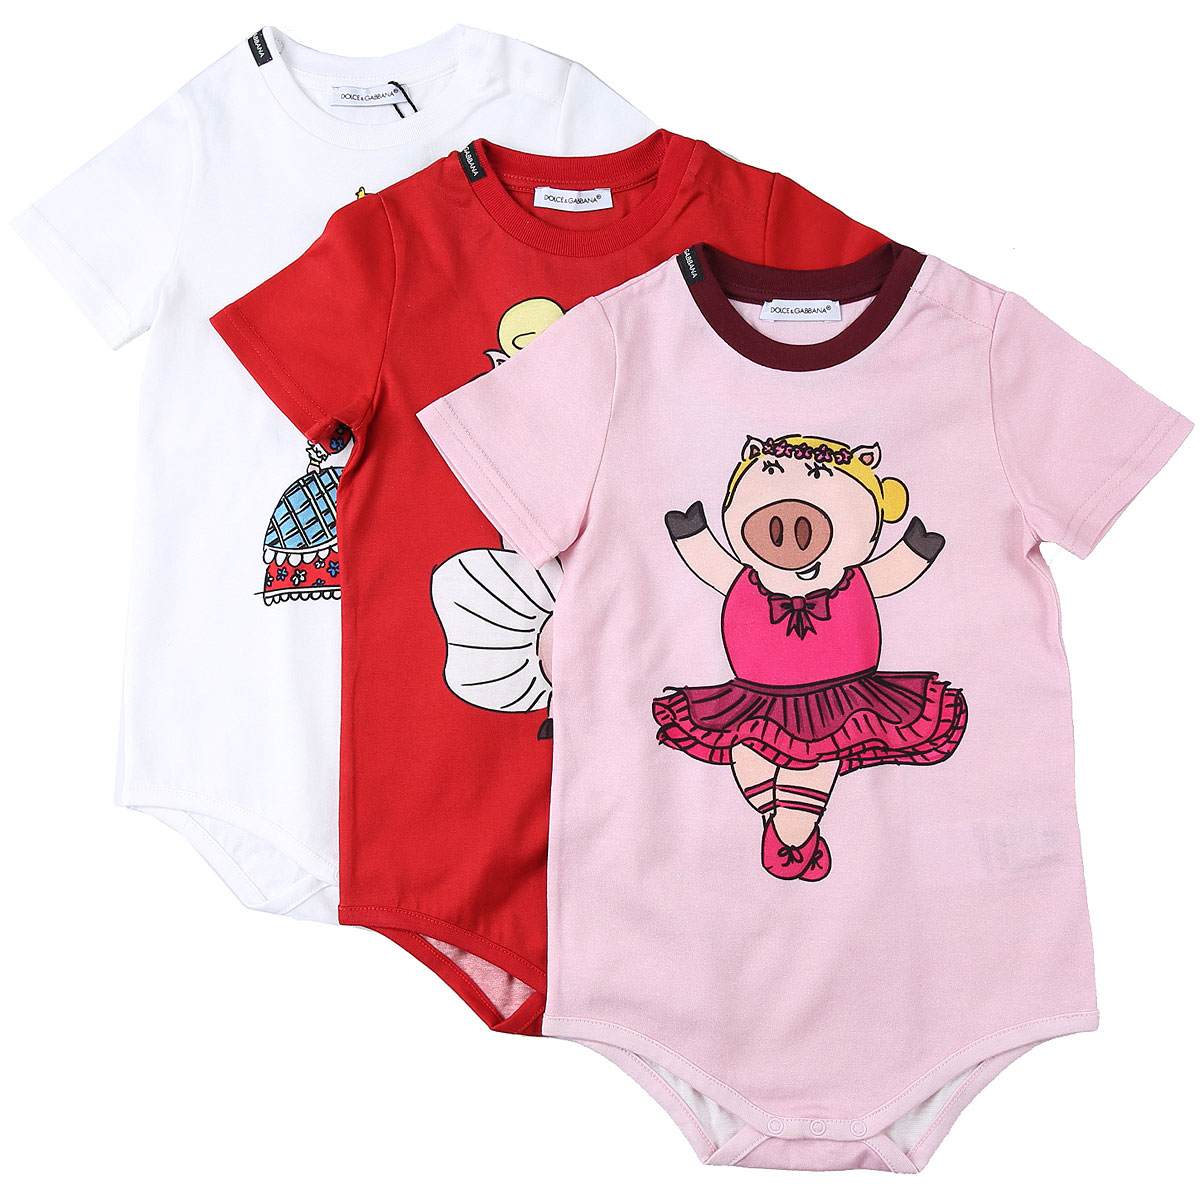 Dolce & Gabbana Baby Bodysuits & Onesies for Girls On Sale in Outlet, Multicolor, Cotton, 2019, 12M 18M 24M 3M 6M